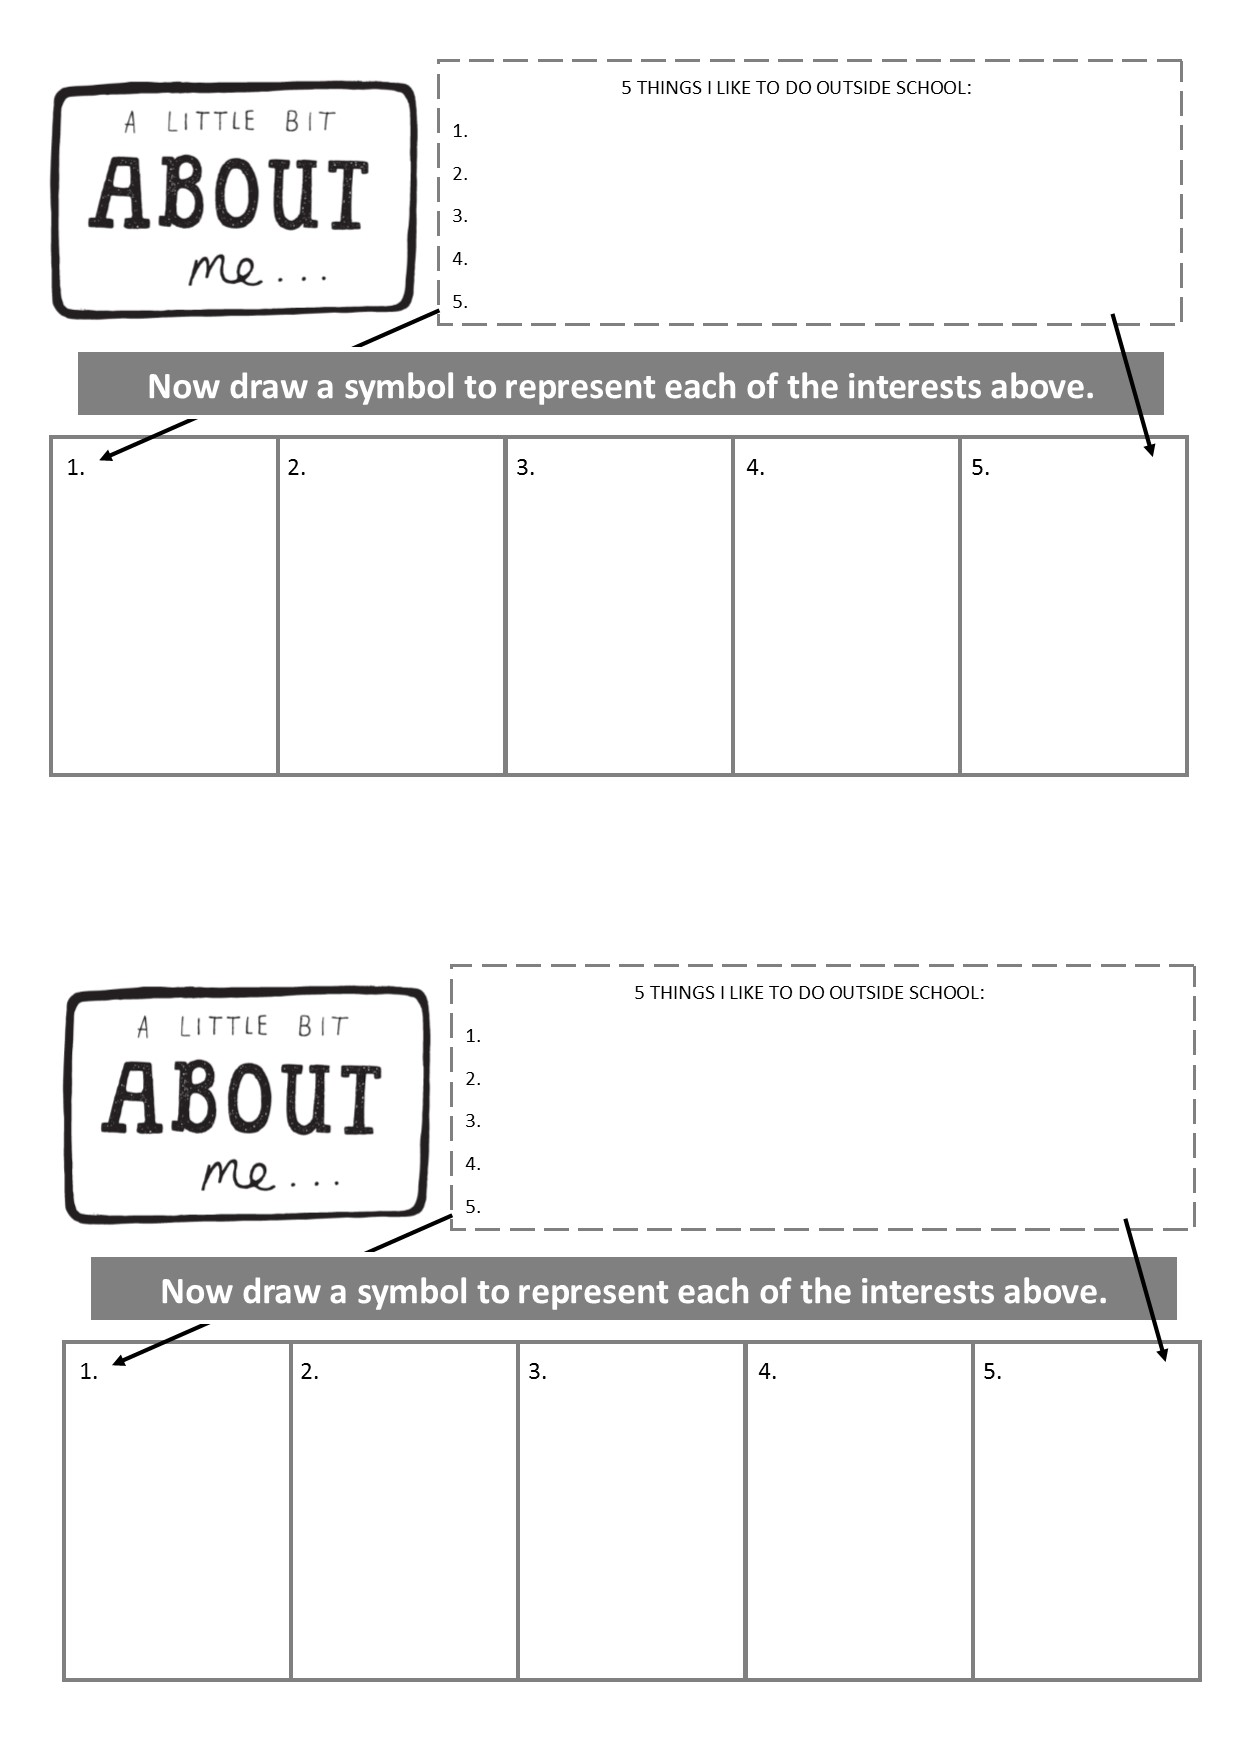 'About Me' Symbolism Worksheet